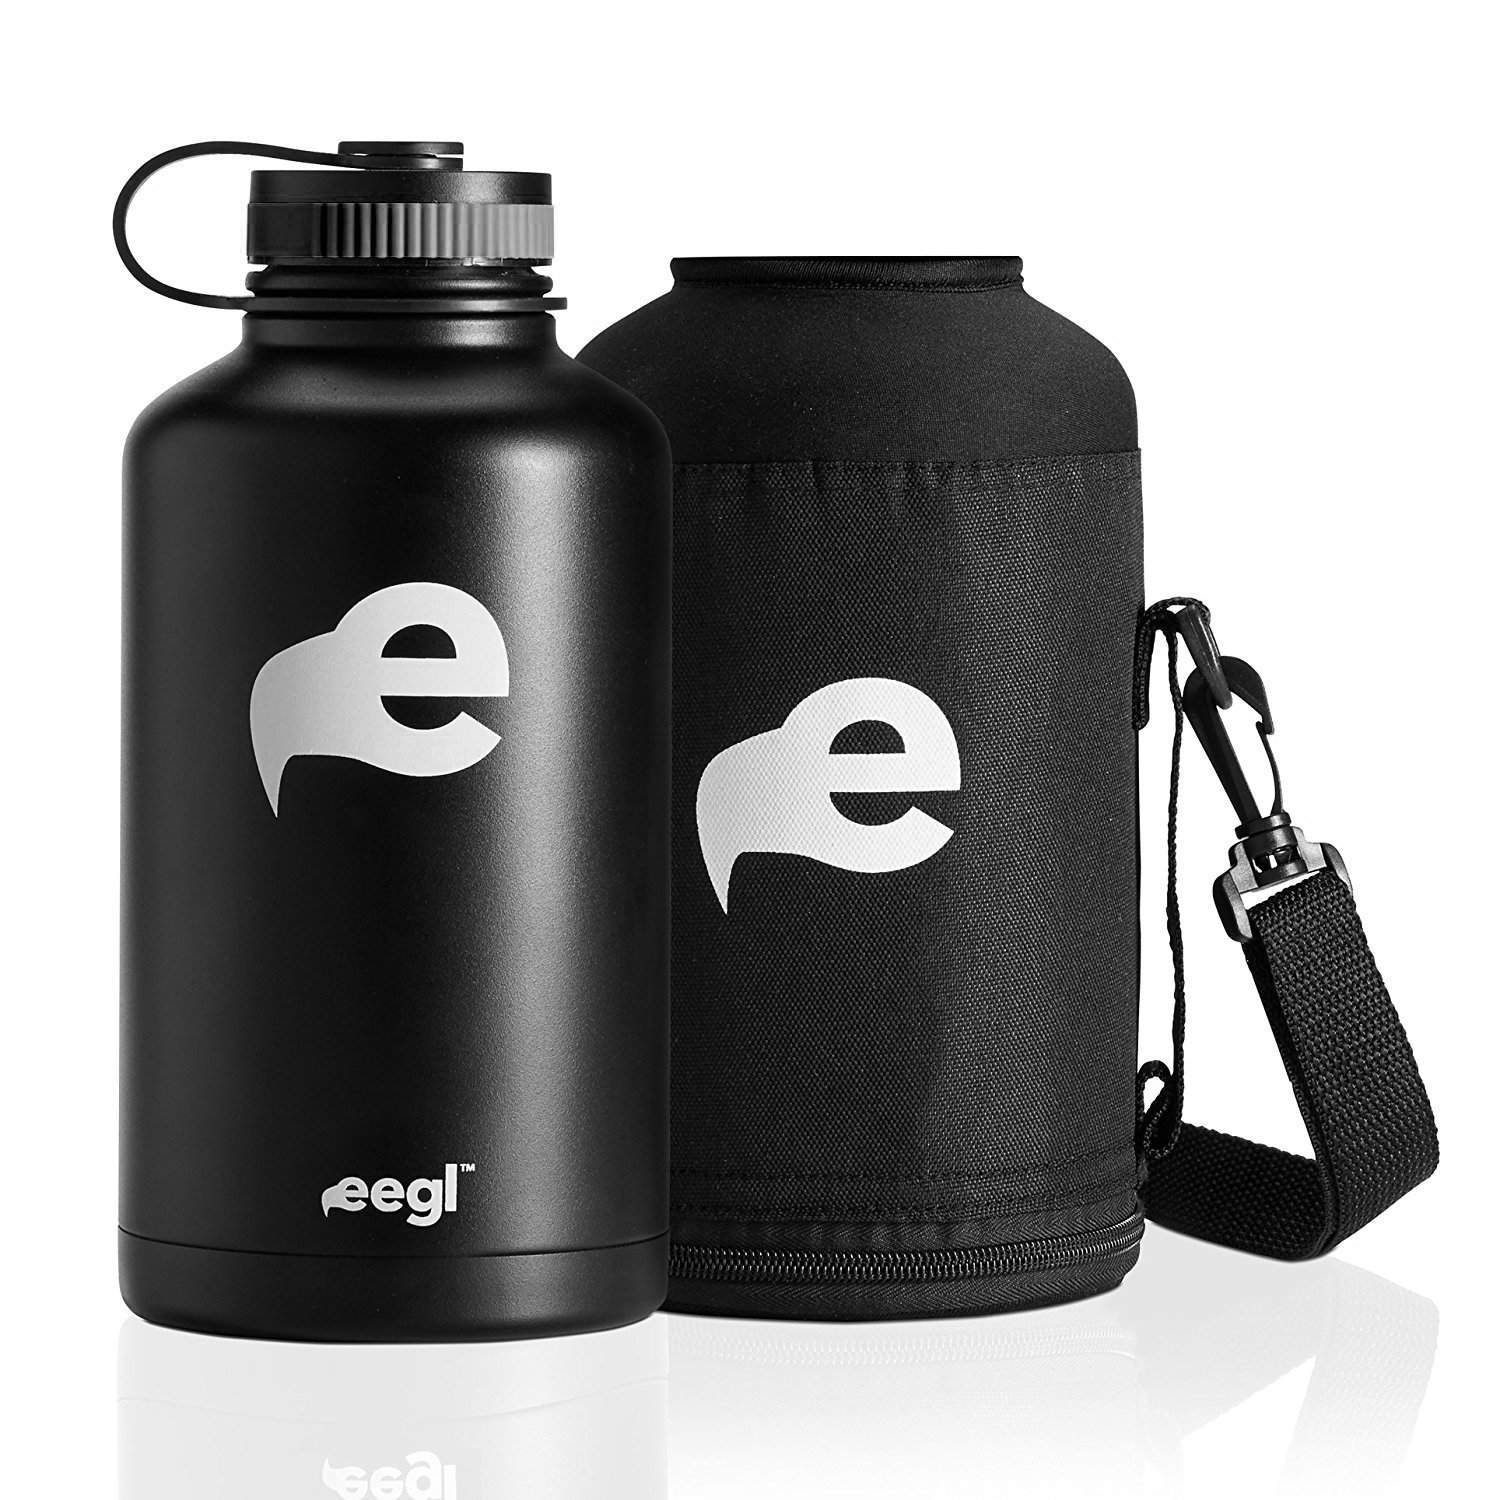 eegl Stainless Steel Insulated Beer Growler - 64 oz Water Bottle - Includes Carry Case - Double Wall Vacuum Sealed Wide Mouth Design. Five Year Guarantee! Perfect Temperature Control from by eegl (Image #1)